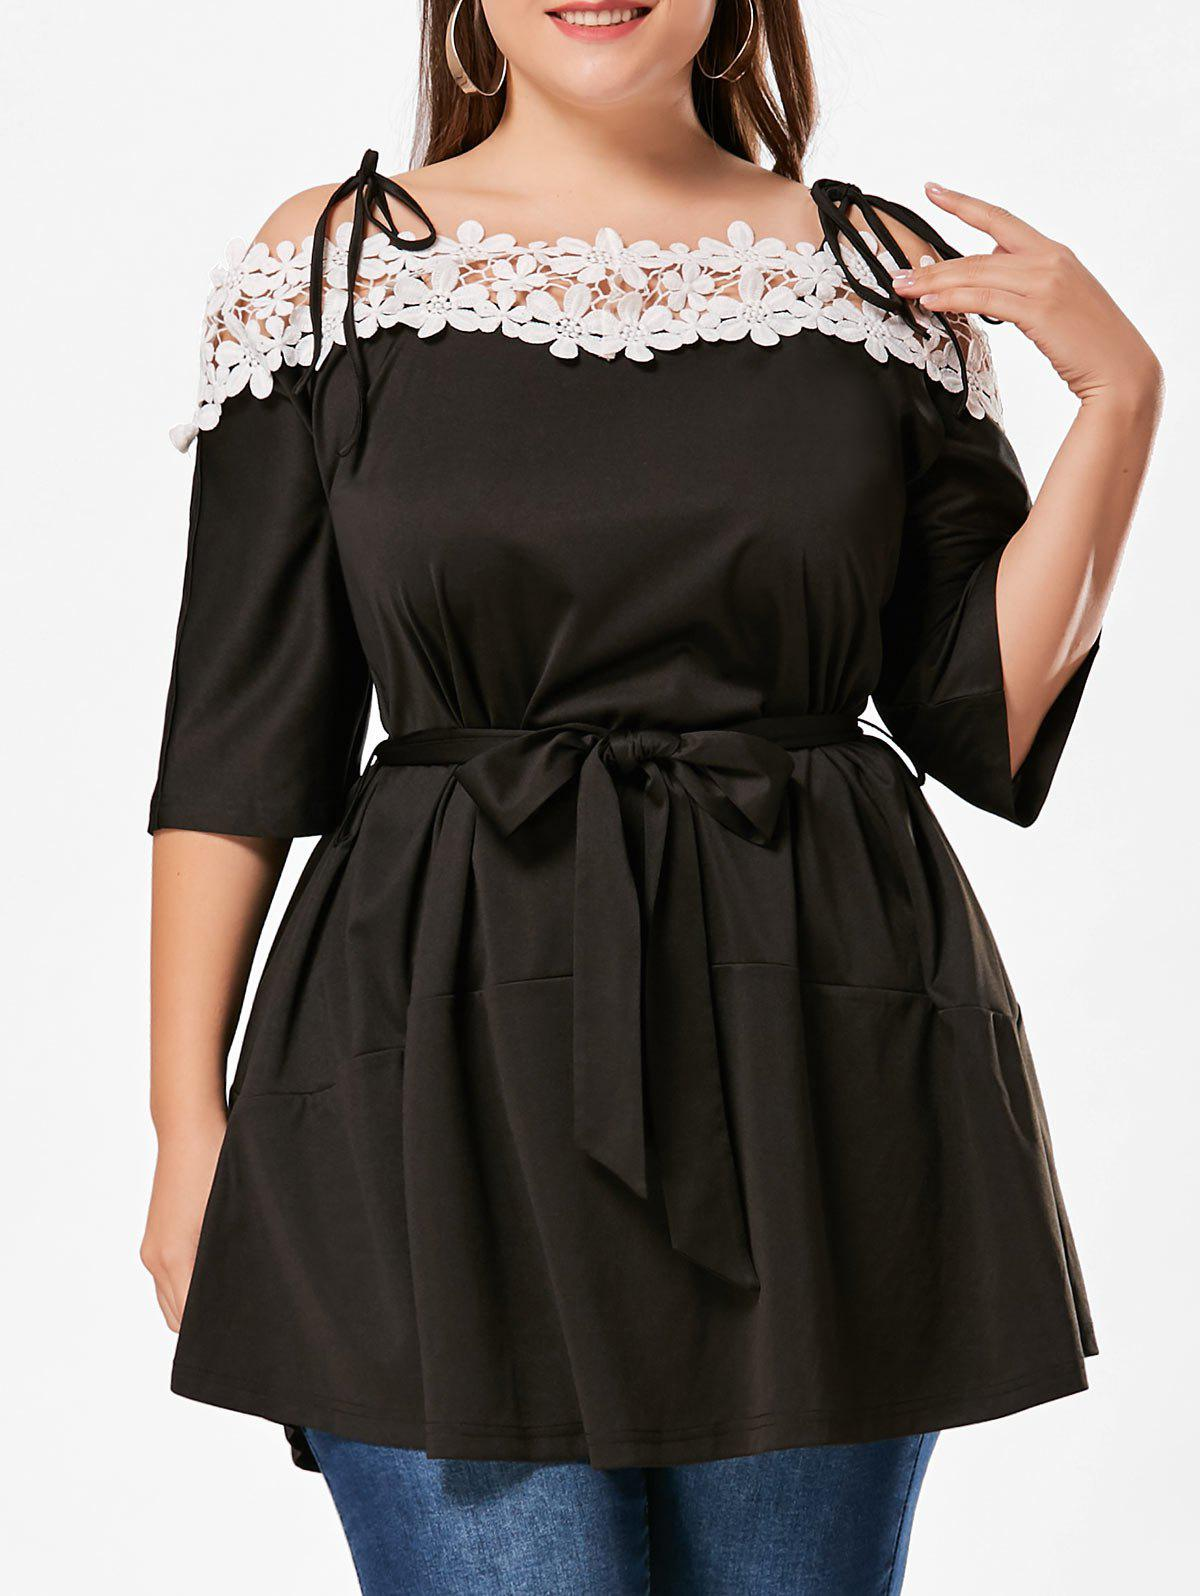 Floral Applique Cold Shoulder Plus Size DressWOMEN<br><br>Size: 3XL; Color: BLACK; Style: Casual; Material: Polyester,Spandex; Silhouette: A-Line; Dresses Length: Mini; Neckline: Spaghetti Strap; Sleeve Length: Half Sleeves; Embellishment: Appliques,Hollow Out,Sashes; Pattern Type: Others; With Belt: Yes; Season: Summer; Weight: 0.4110kg; Package Contents: 1 x Dress  1 x Belt;